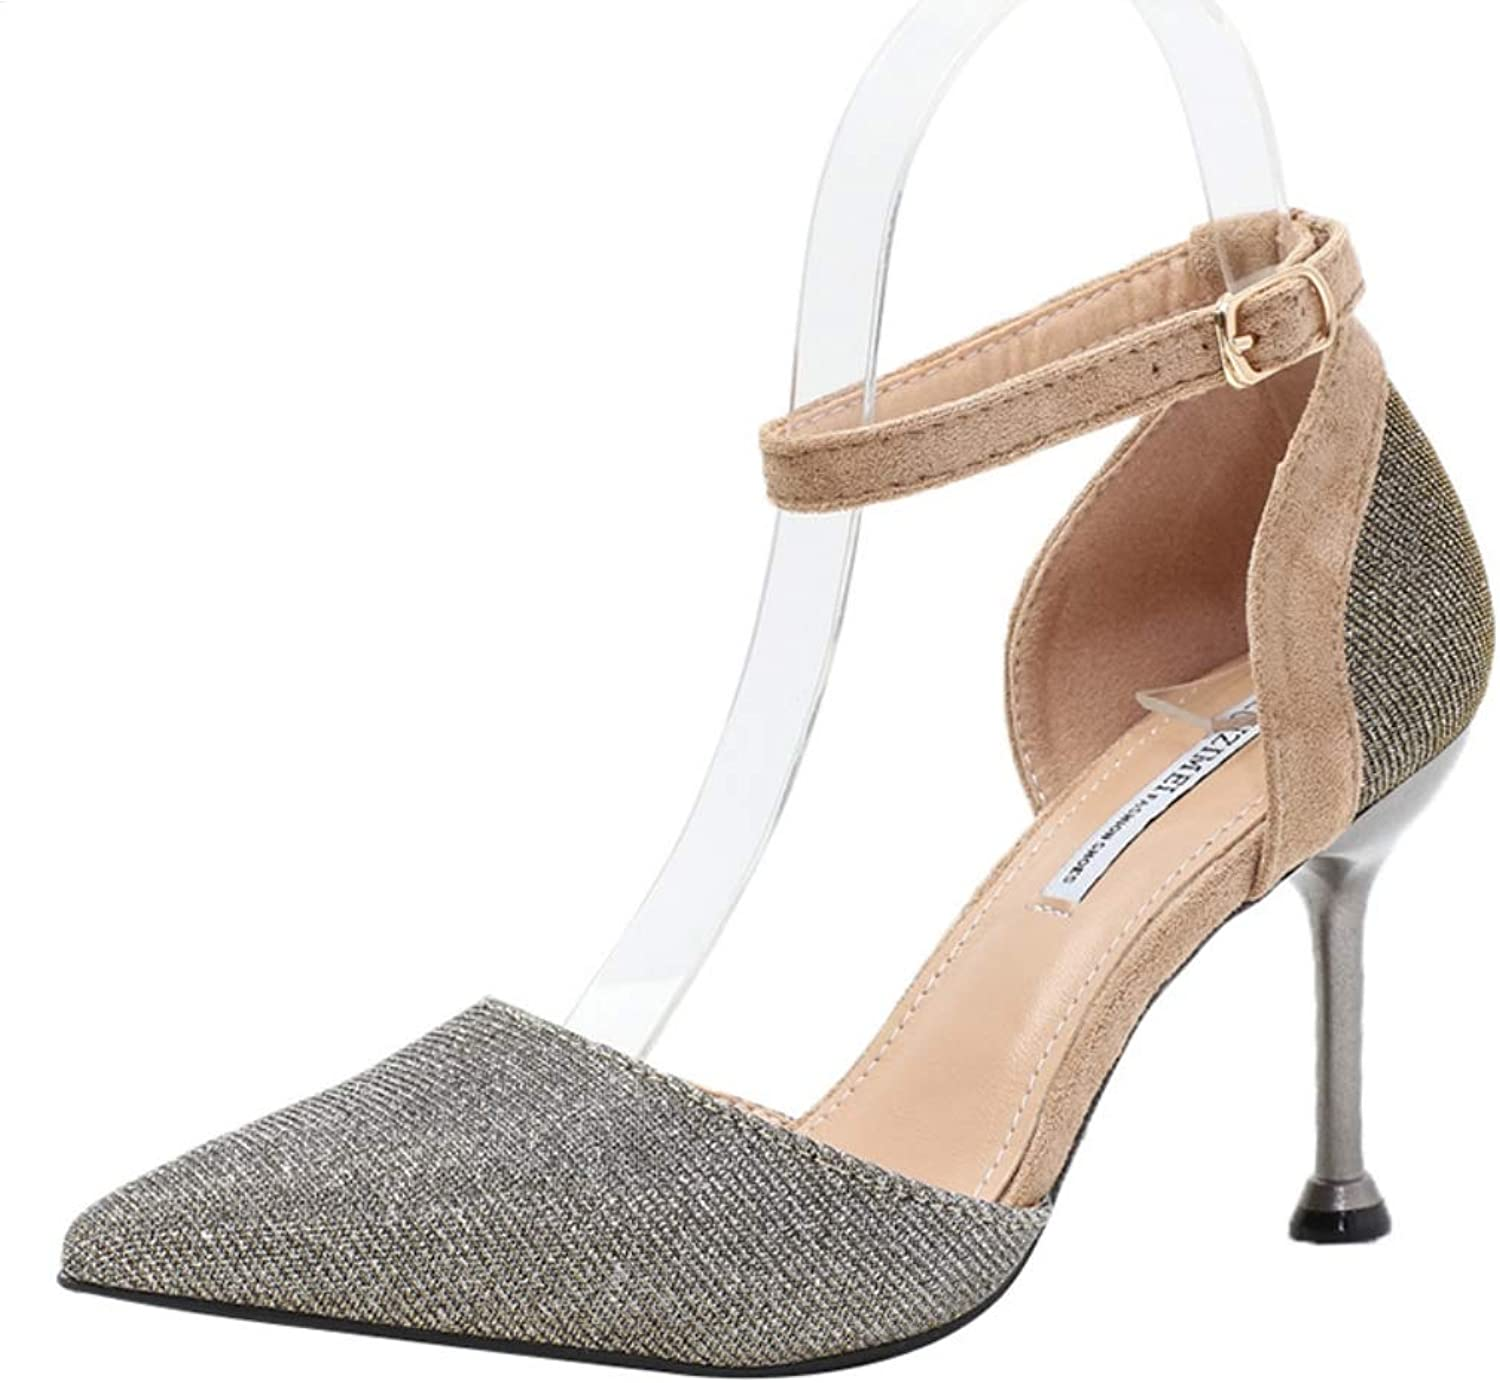 Womens High Heel Stiletto shoes Glitter Ankle Strap Heels Evening Party Special Occasion shoes Court shoes Bridal Party Dress Sandals Size